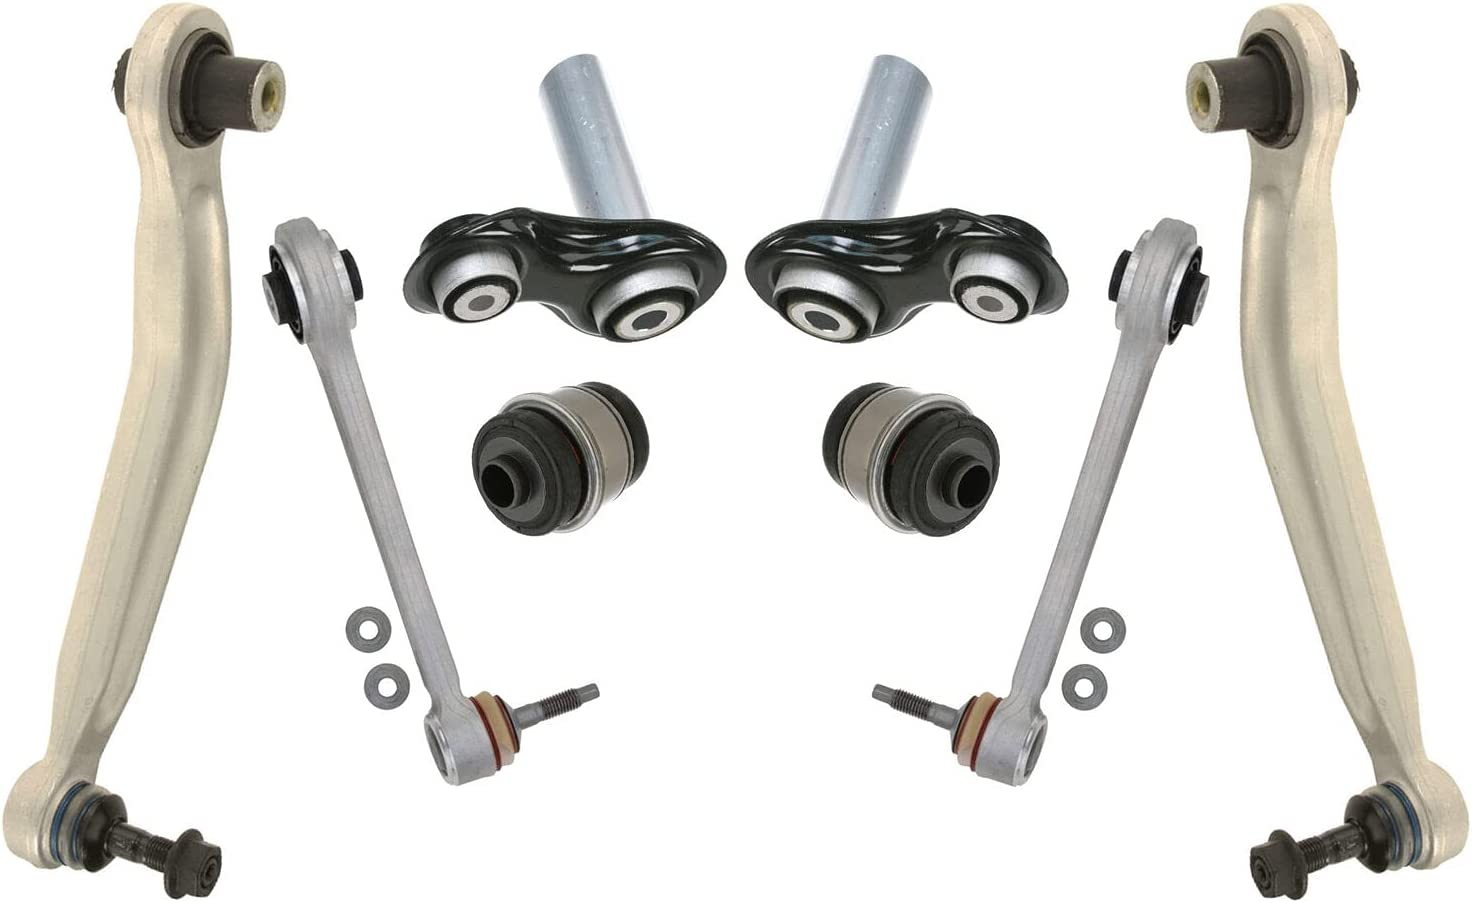 Rear Max 50% OFF 8-Piece Suspension Control Arm E60 with Ranking TOP16 kit Compatible BMW